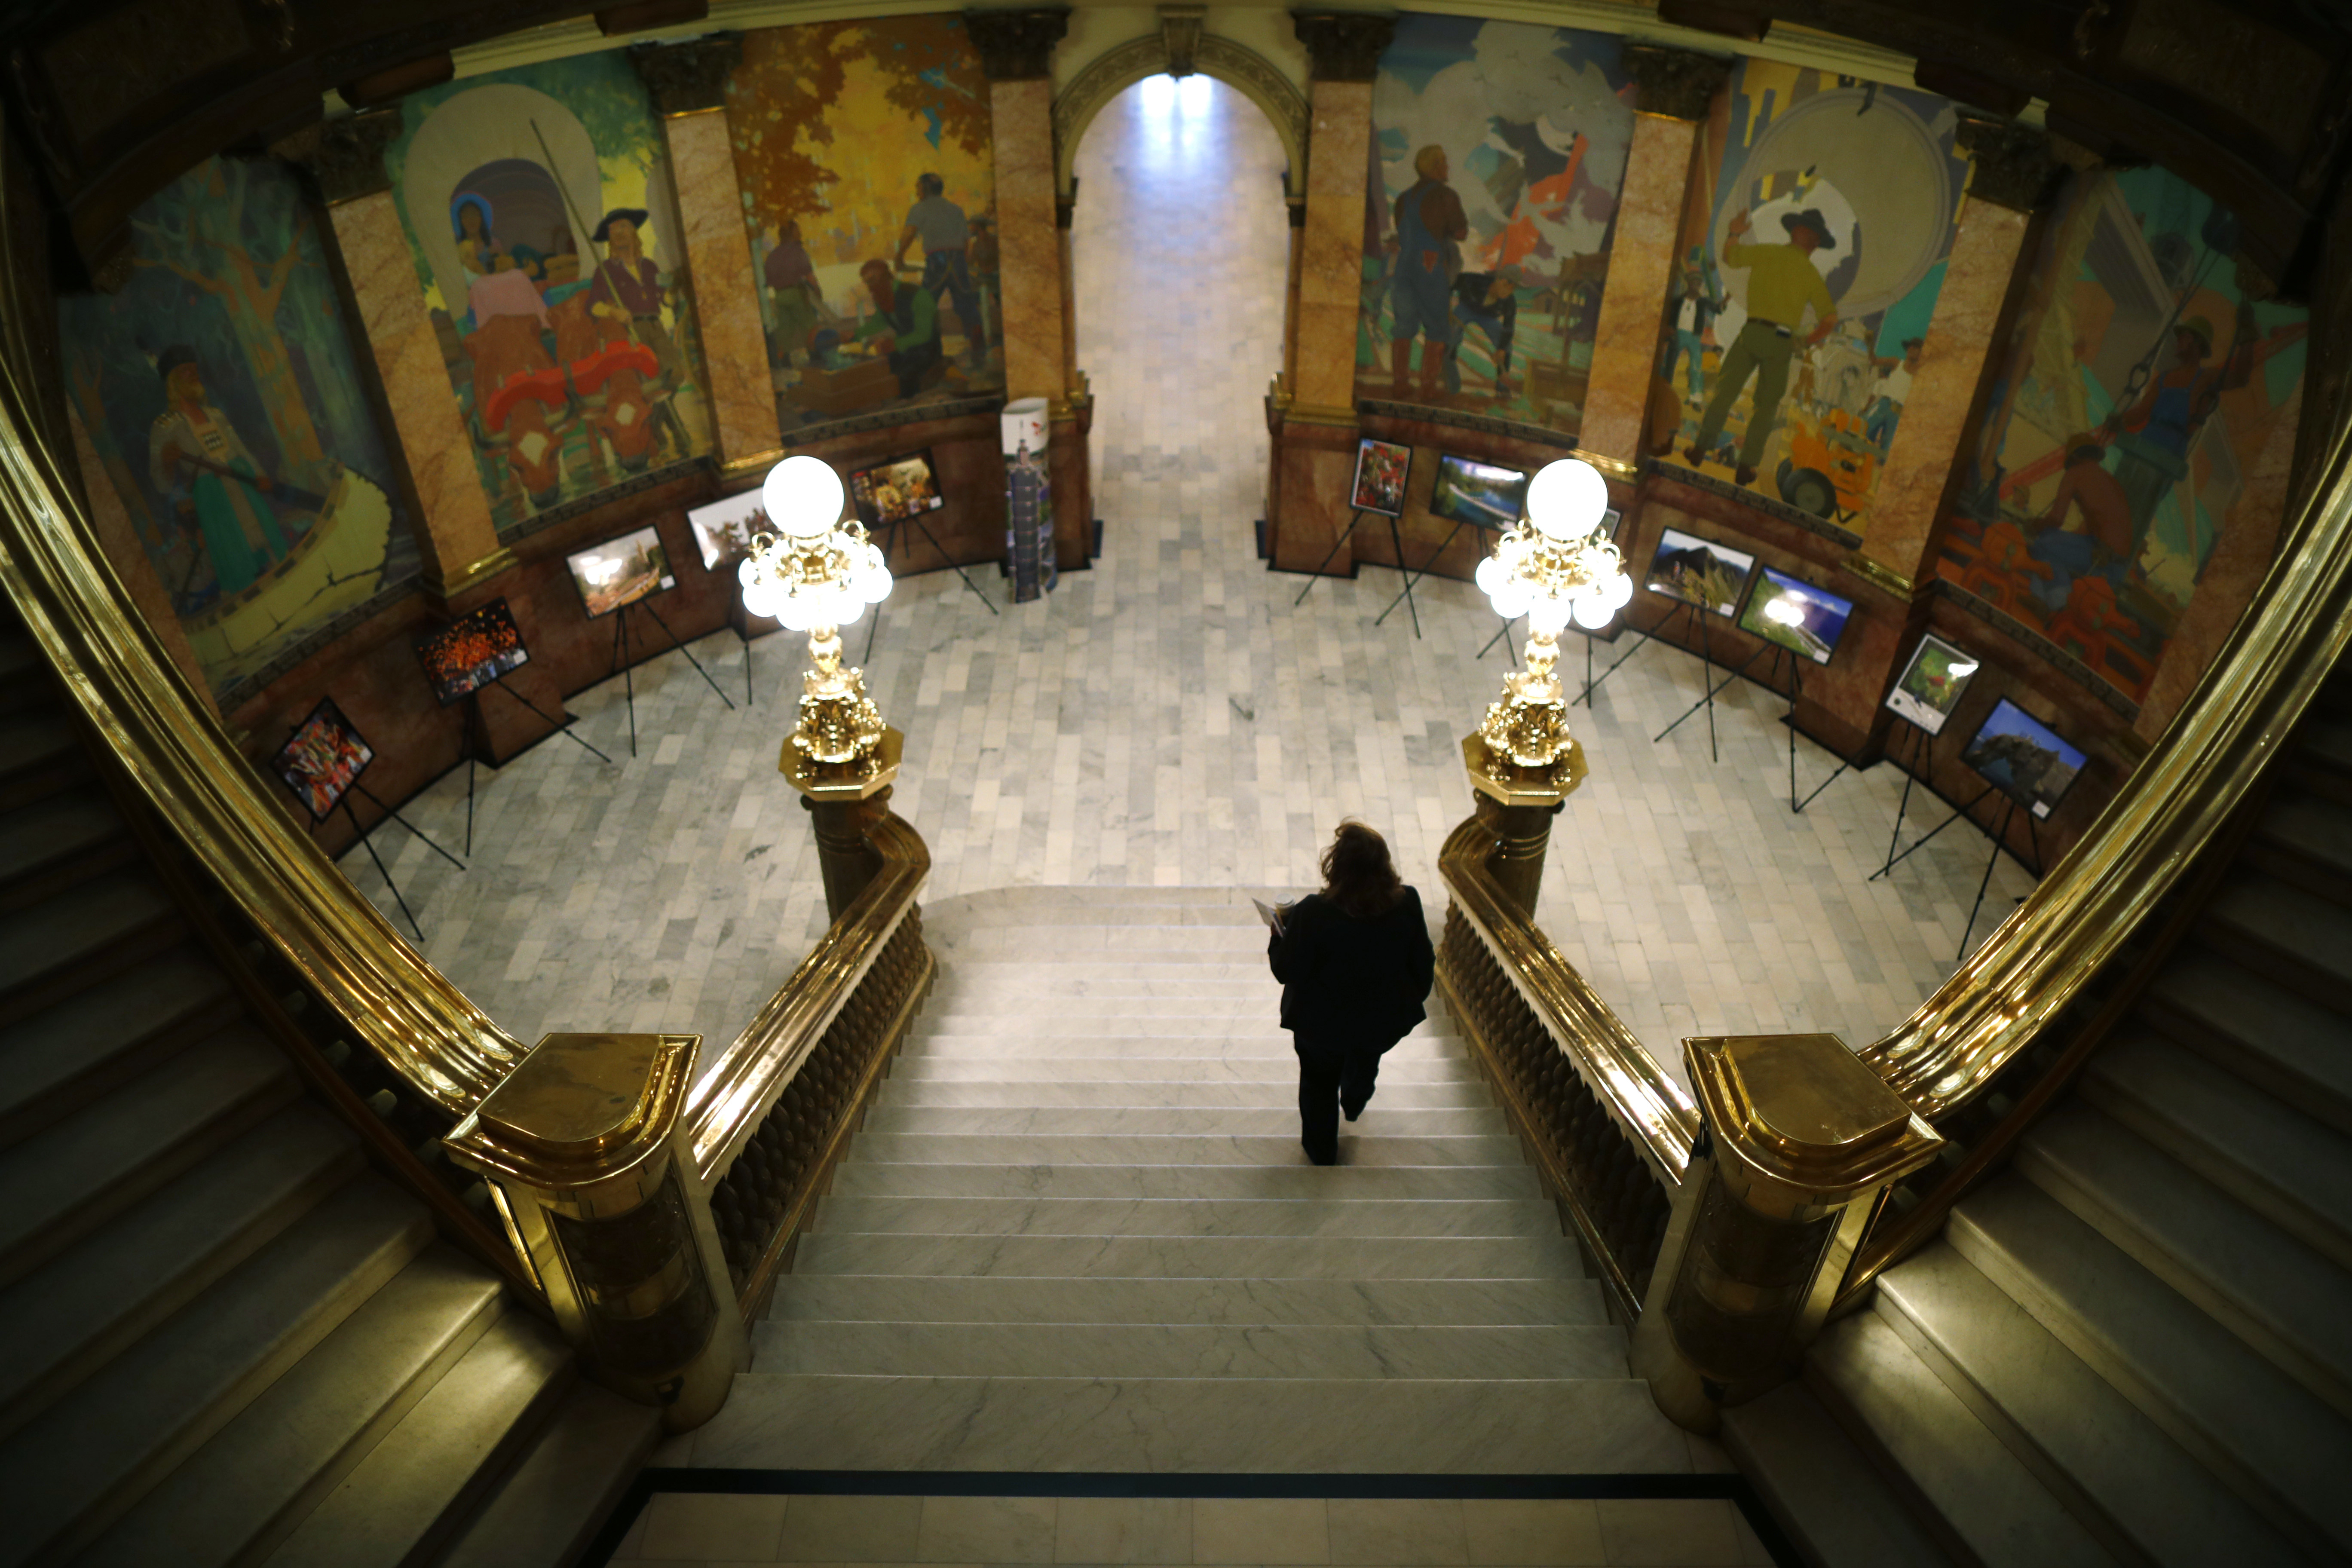 <p>A woman walks down the stairs in the rotunda of the Colorado State Capitol as lawmakers work on the final day of the session Wednesday, May 9, 2018.</p>